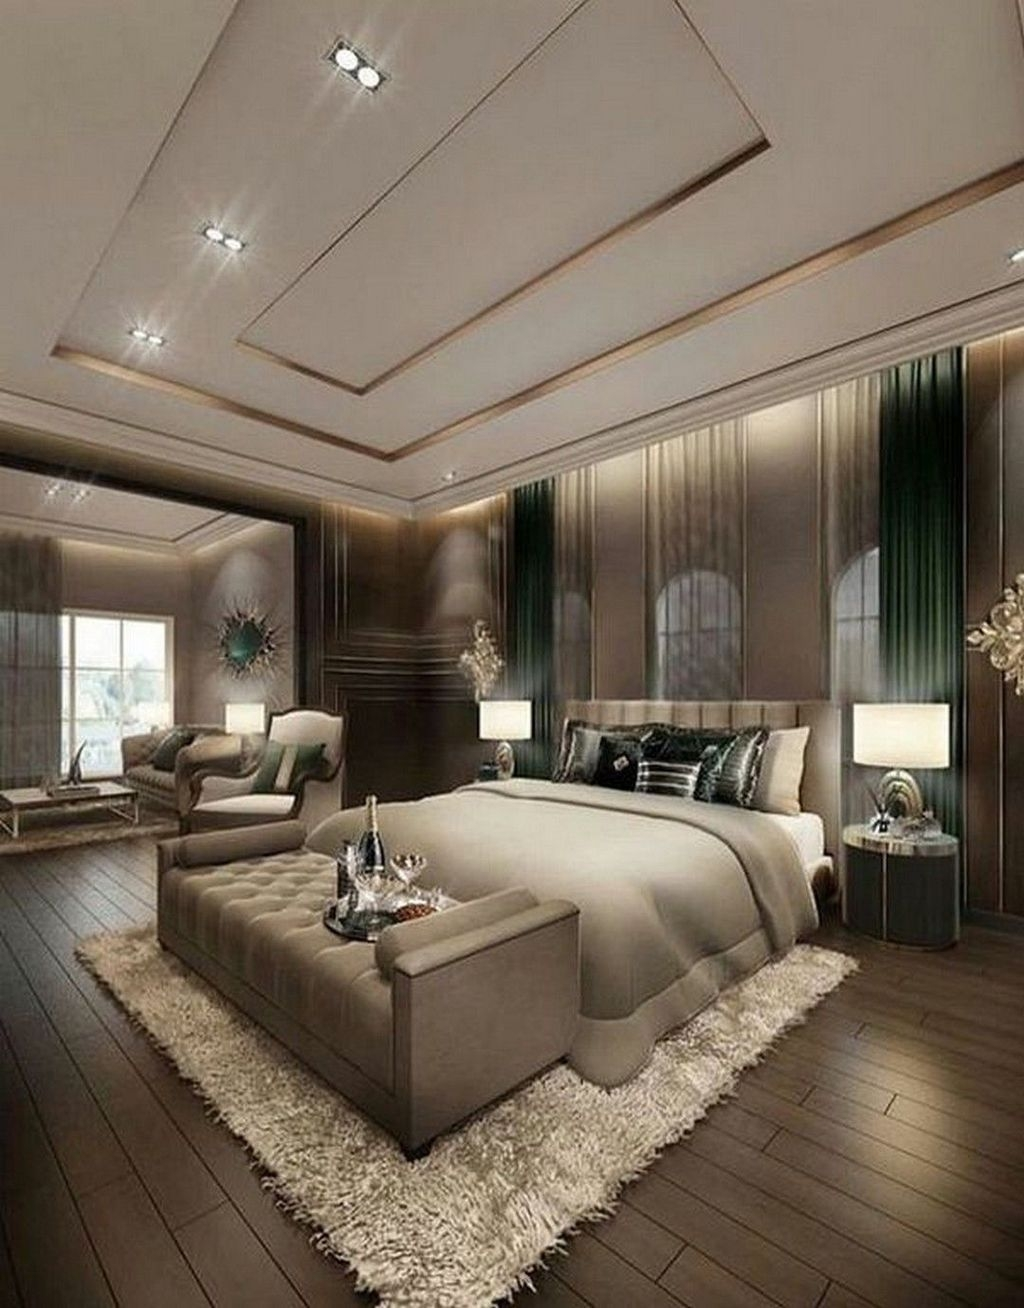 Stylish Bedroom Design Ideas For You To Apply In Your Home35